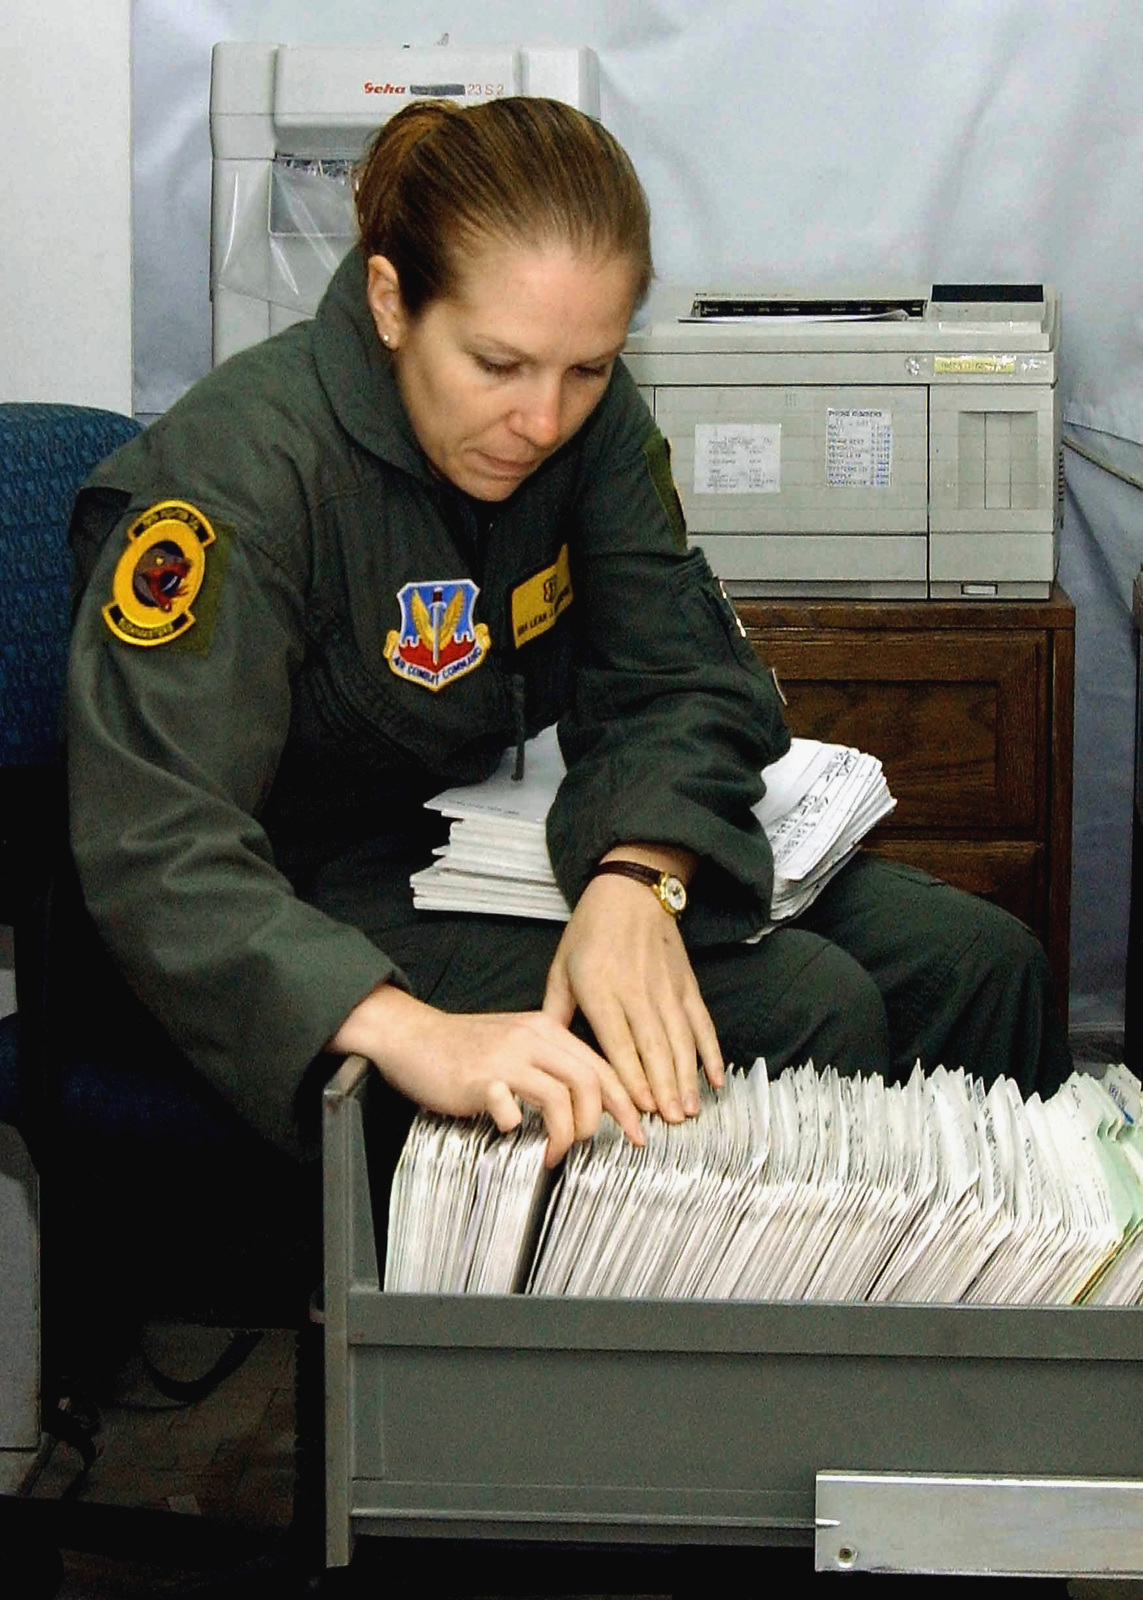 US Air Force (USAF) SENIOR Airmen (SRA) Leah Makowski, Medical Technician, deployed with the 78th Expeditionary Fighter Squadron (EFS), files medical records inside the medical clinic in tent city at Incirlik Air Base, Turkey, while deployed in support of Combined Task Force, Operation NORTHERN WATCH